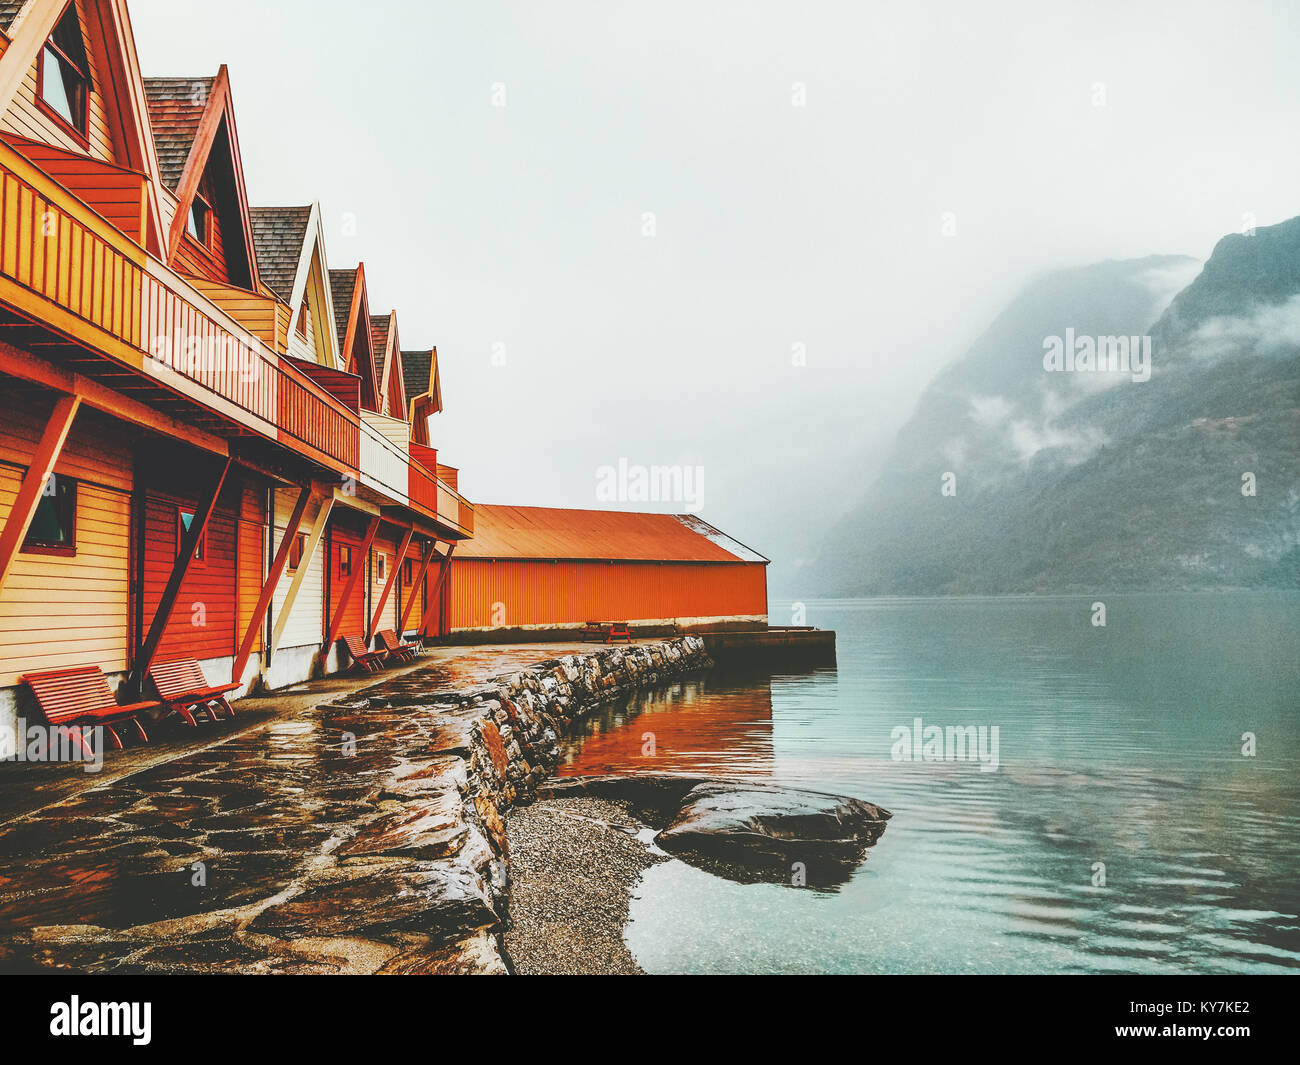 Cozy wooden country houses terrace exterior mountains and fjord view in Norway scandinavian style - Stock Image